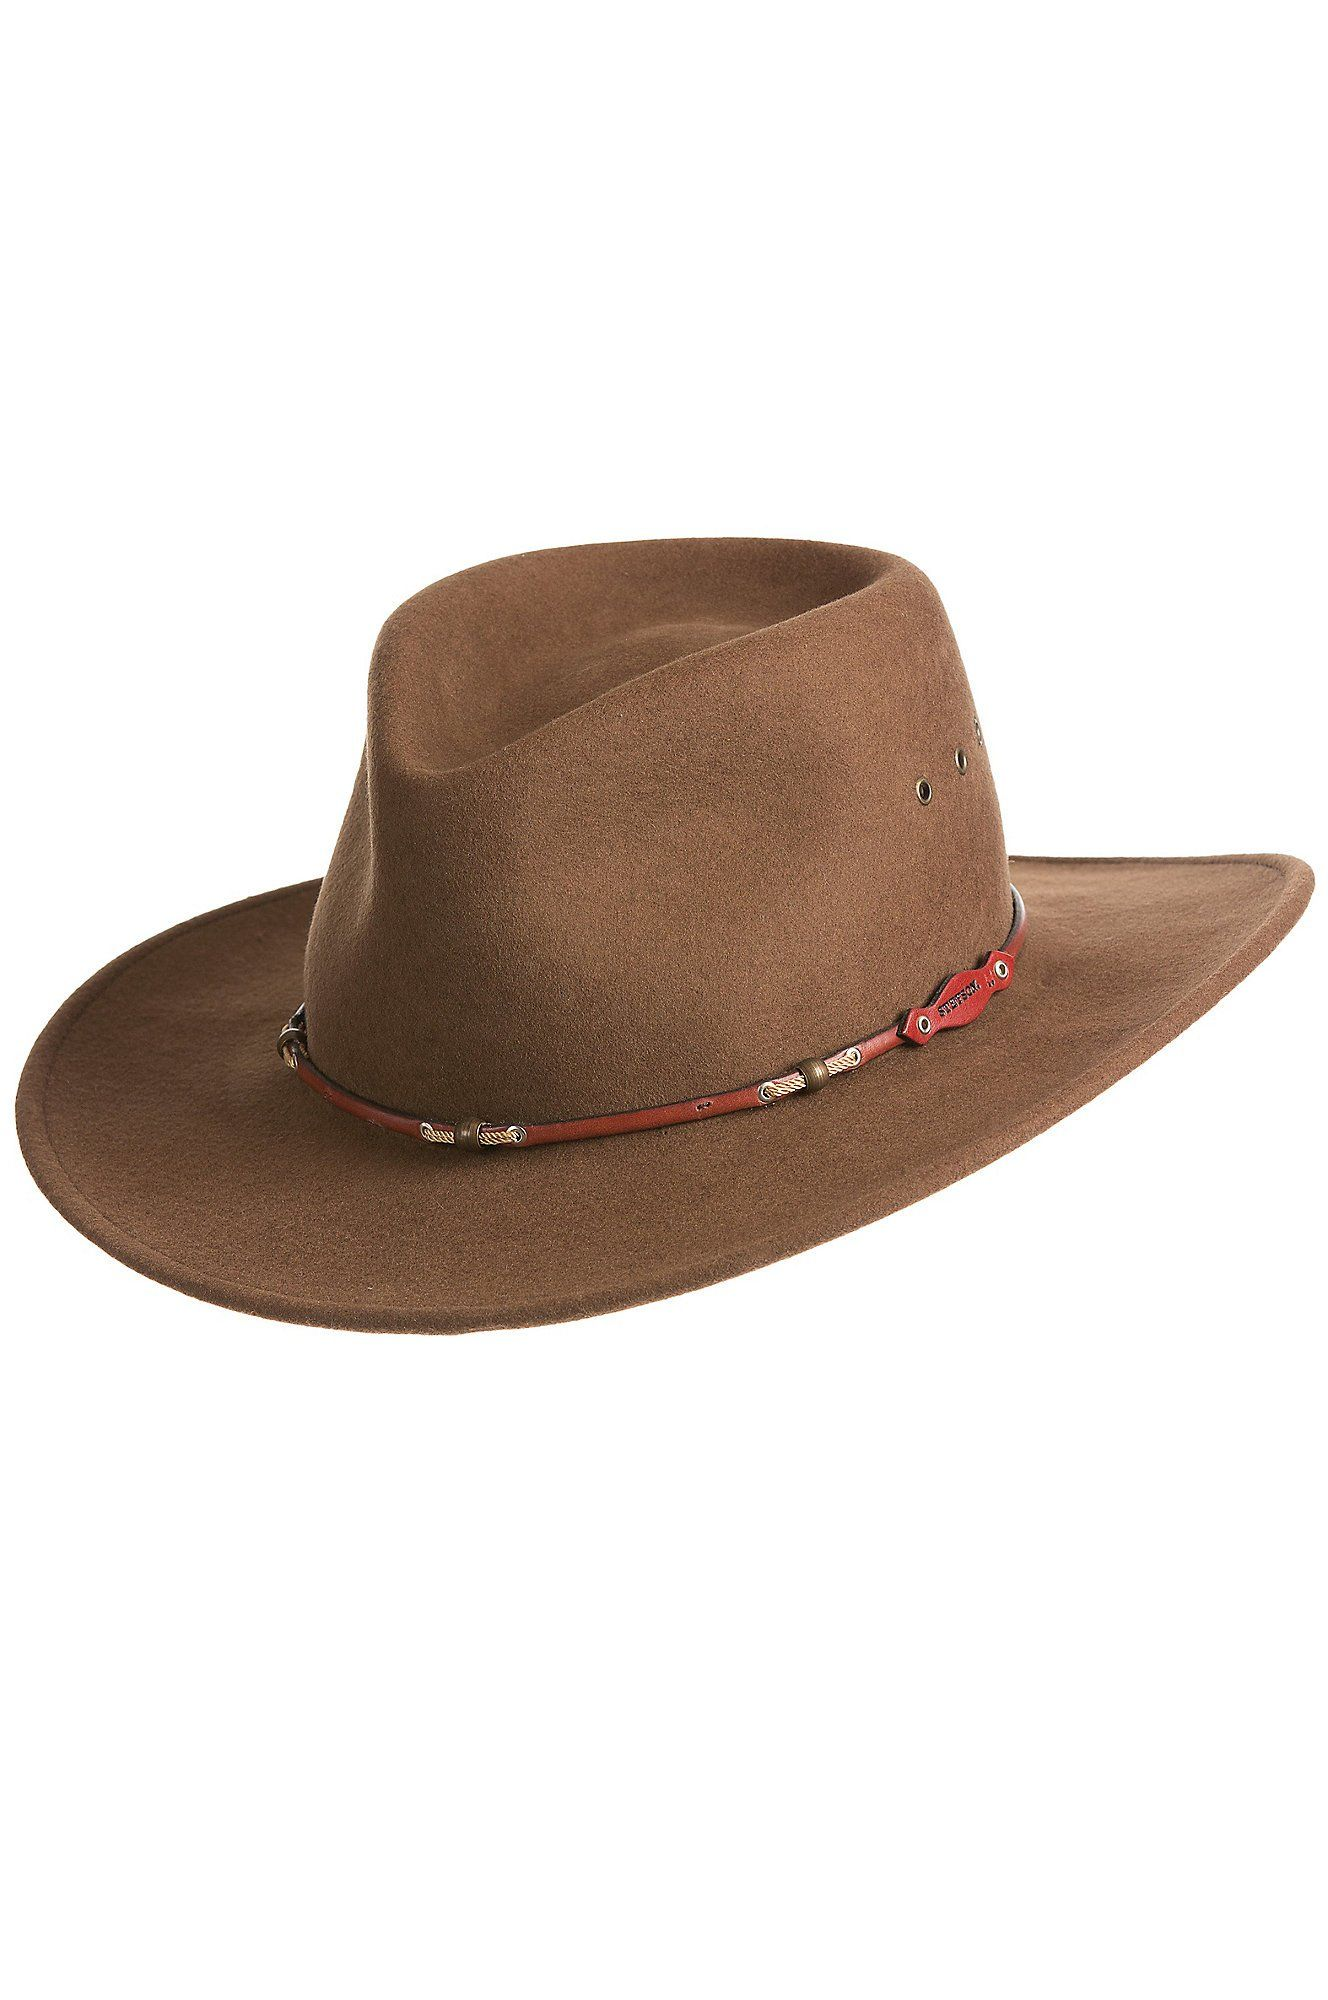 Stetson Mens Wildwood Acorn Crushable Wool Felt Hat Acorn Medium -- Learn  more by visiting the image link. (This is an affiliate link)  HashTag2 1dd71d4058e